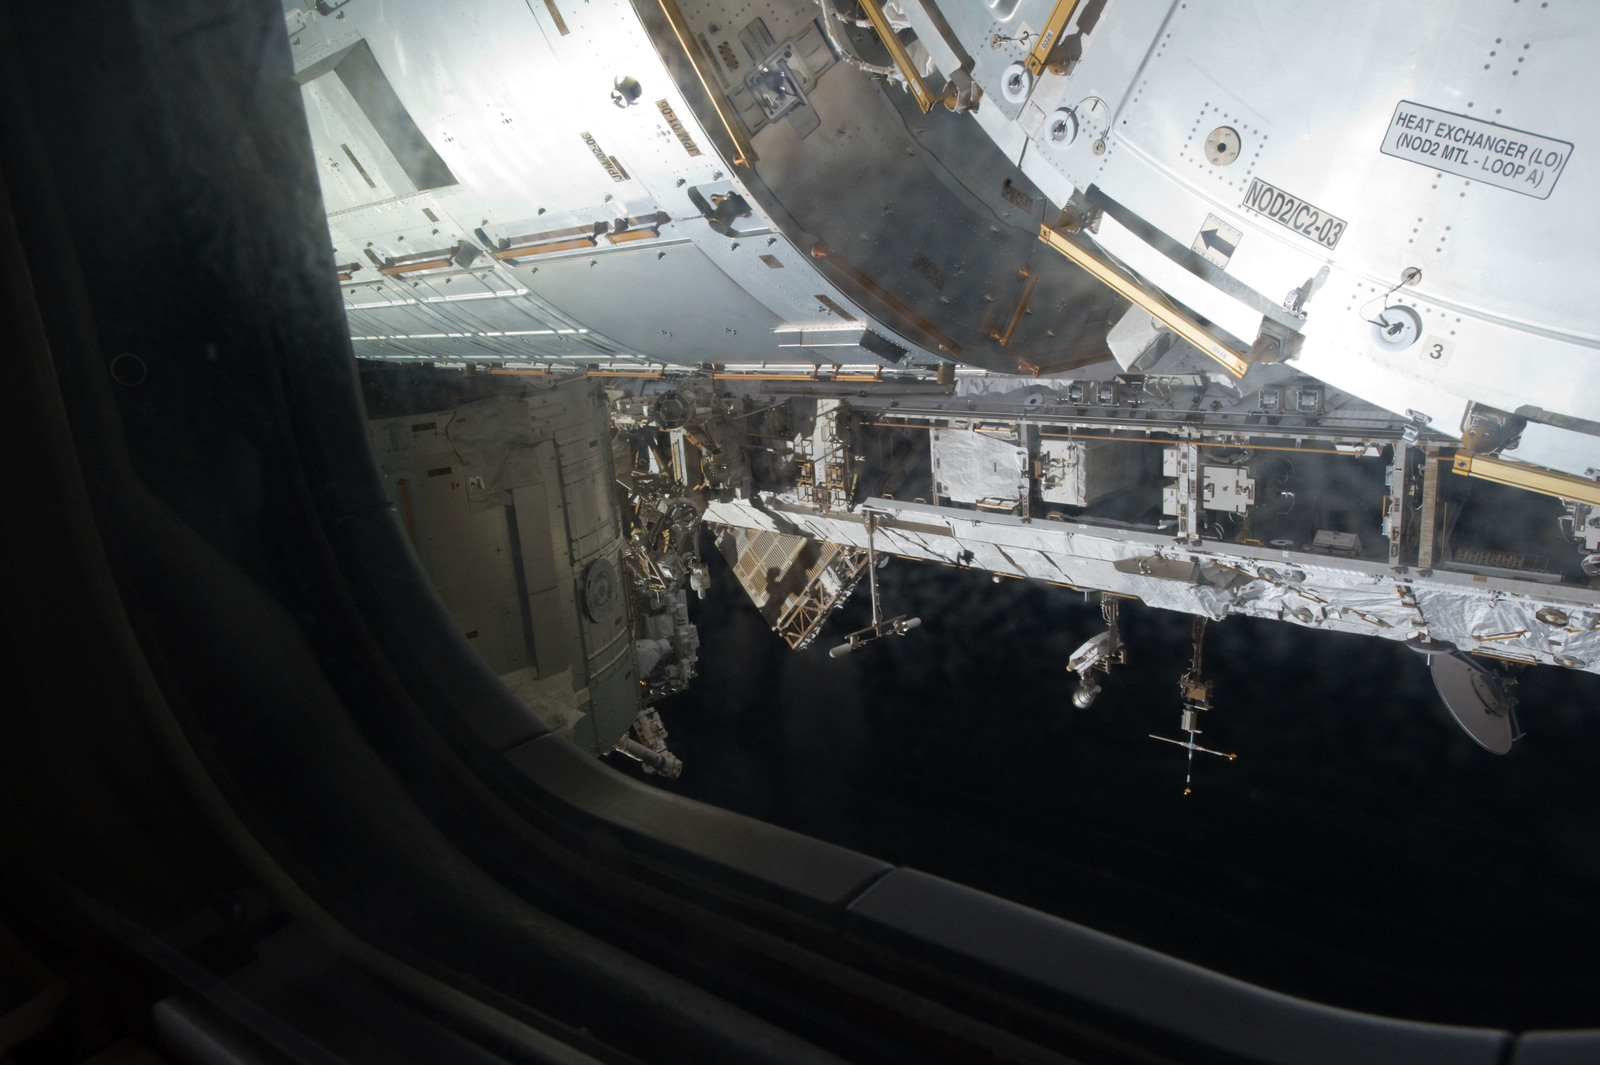 S134E007337 - STS-134 - Exterior view of ISS taken from docked Shuttle